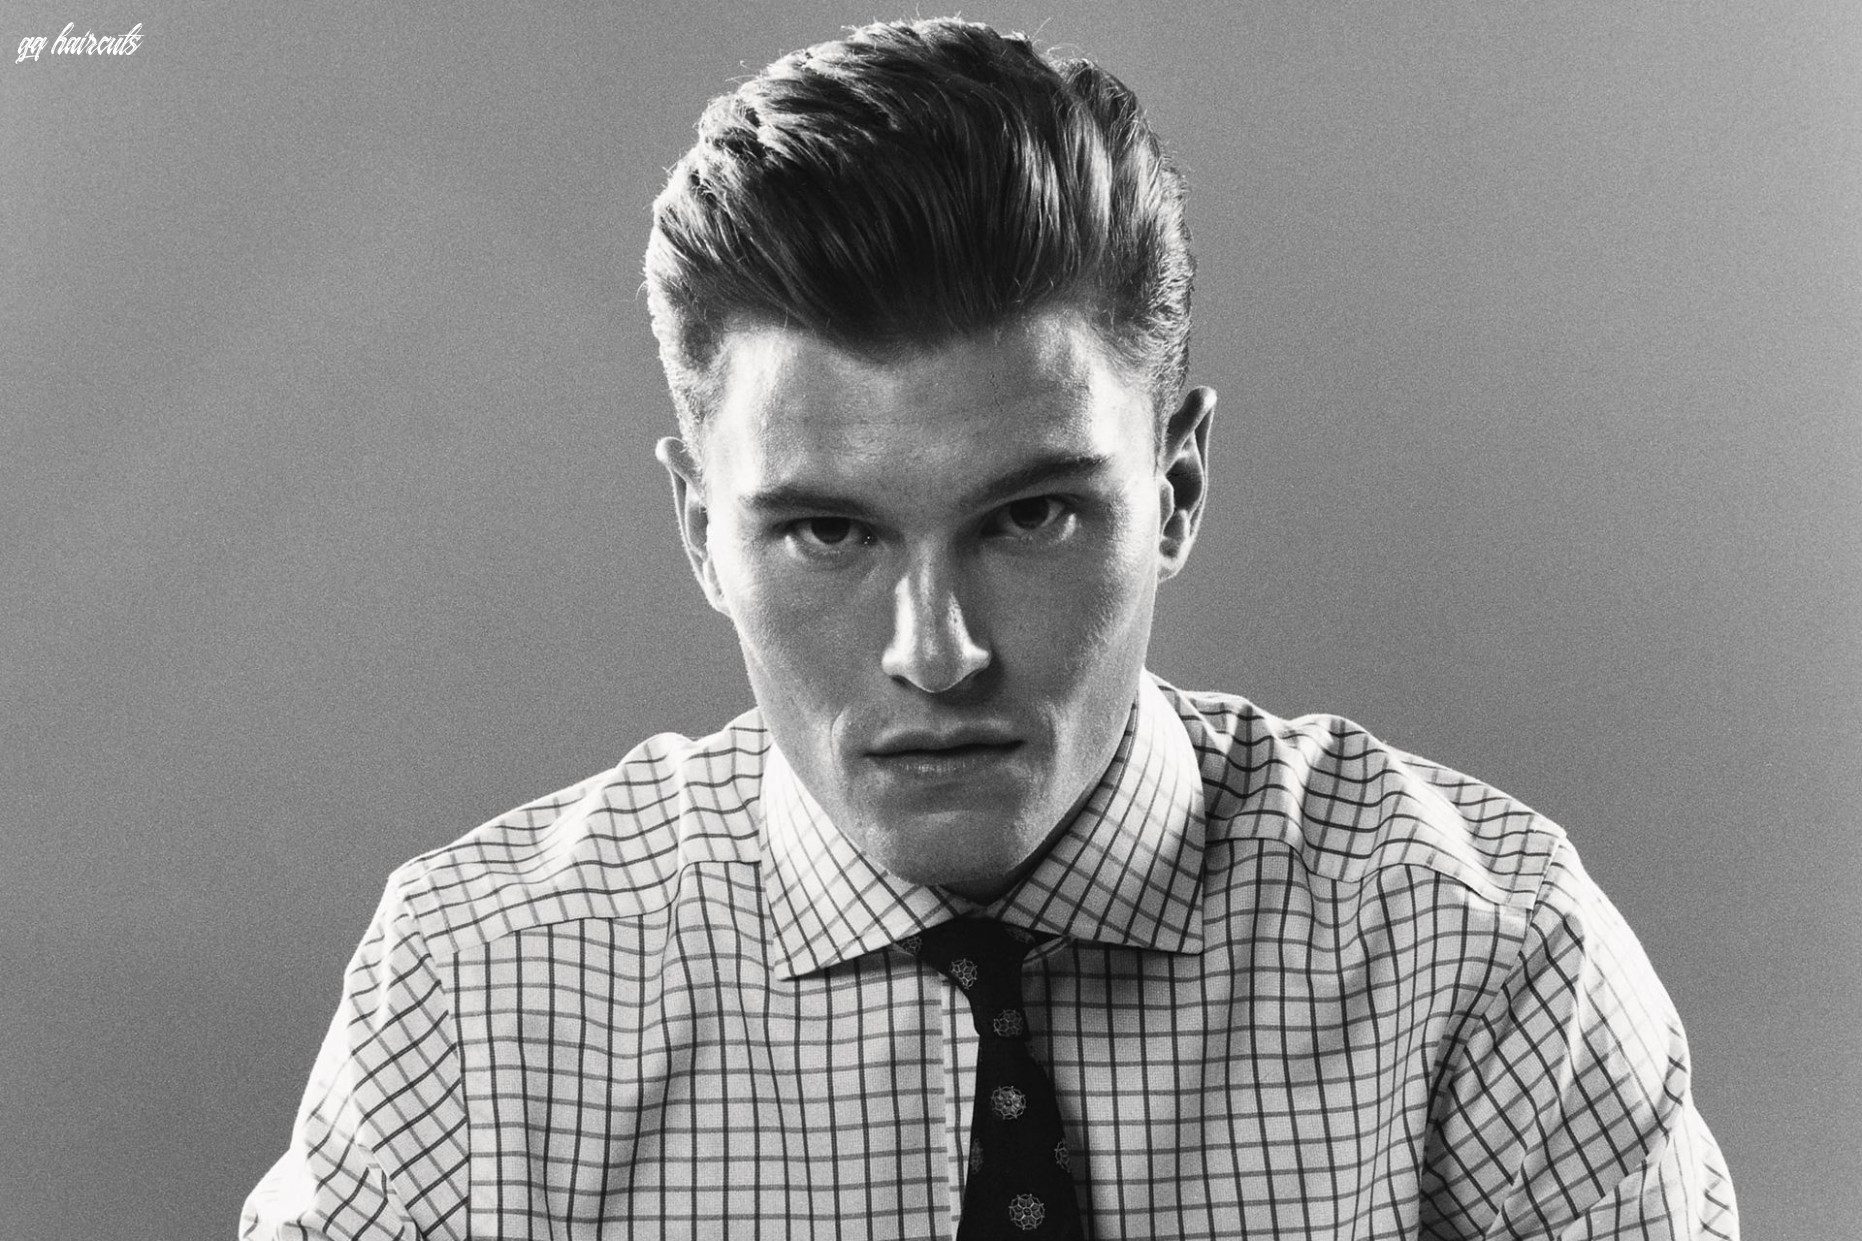 8 of the best short men's haircuts for work   British GQ